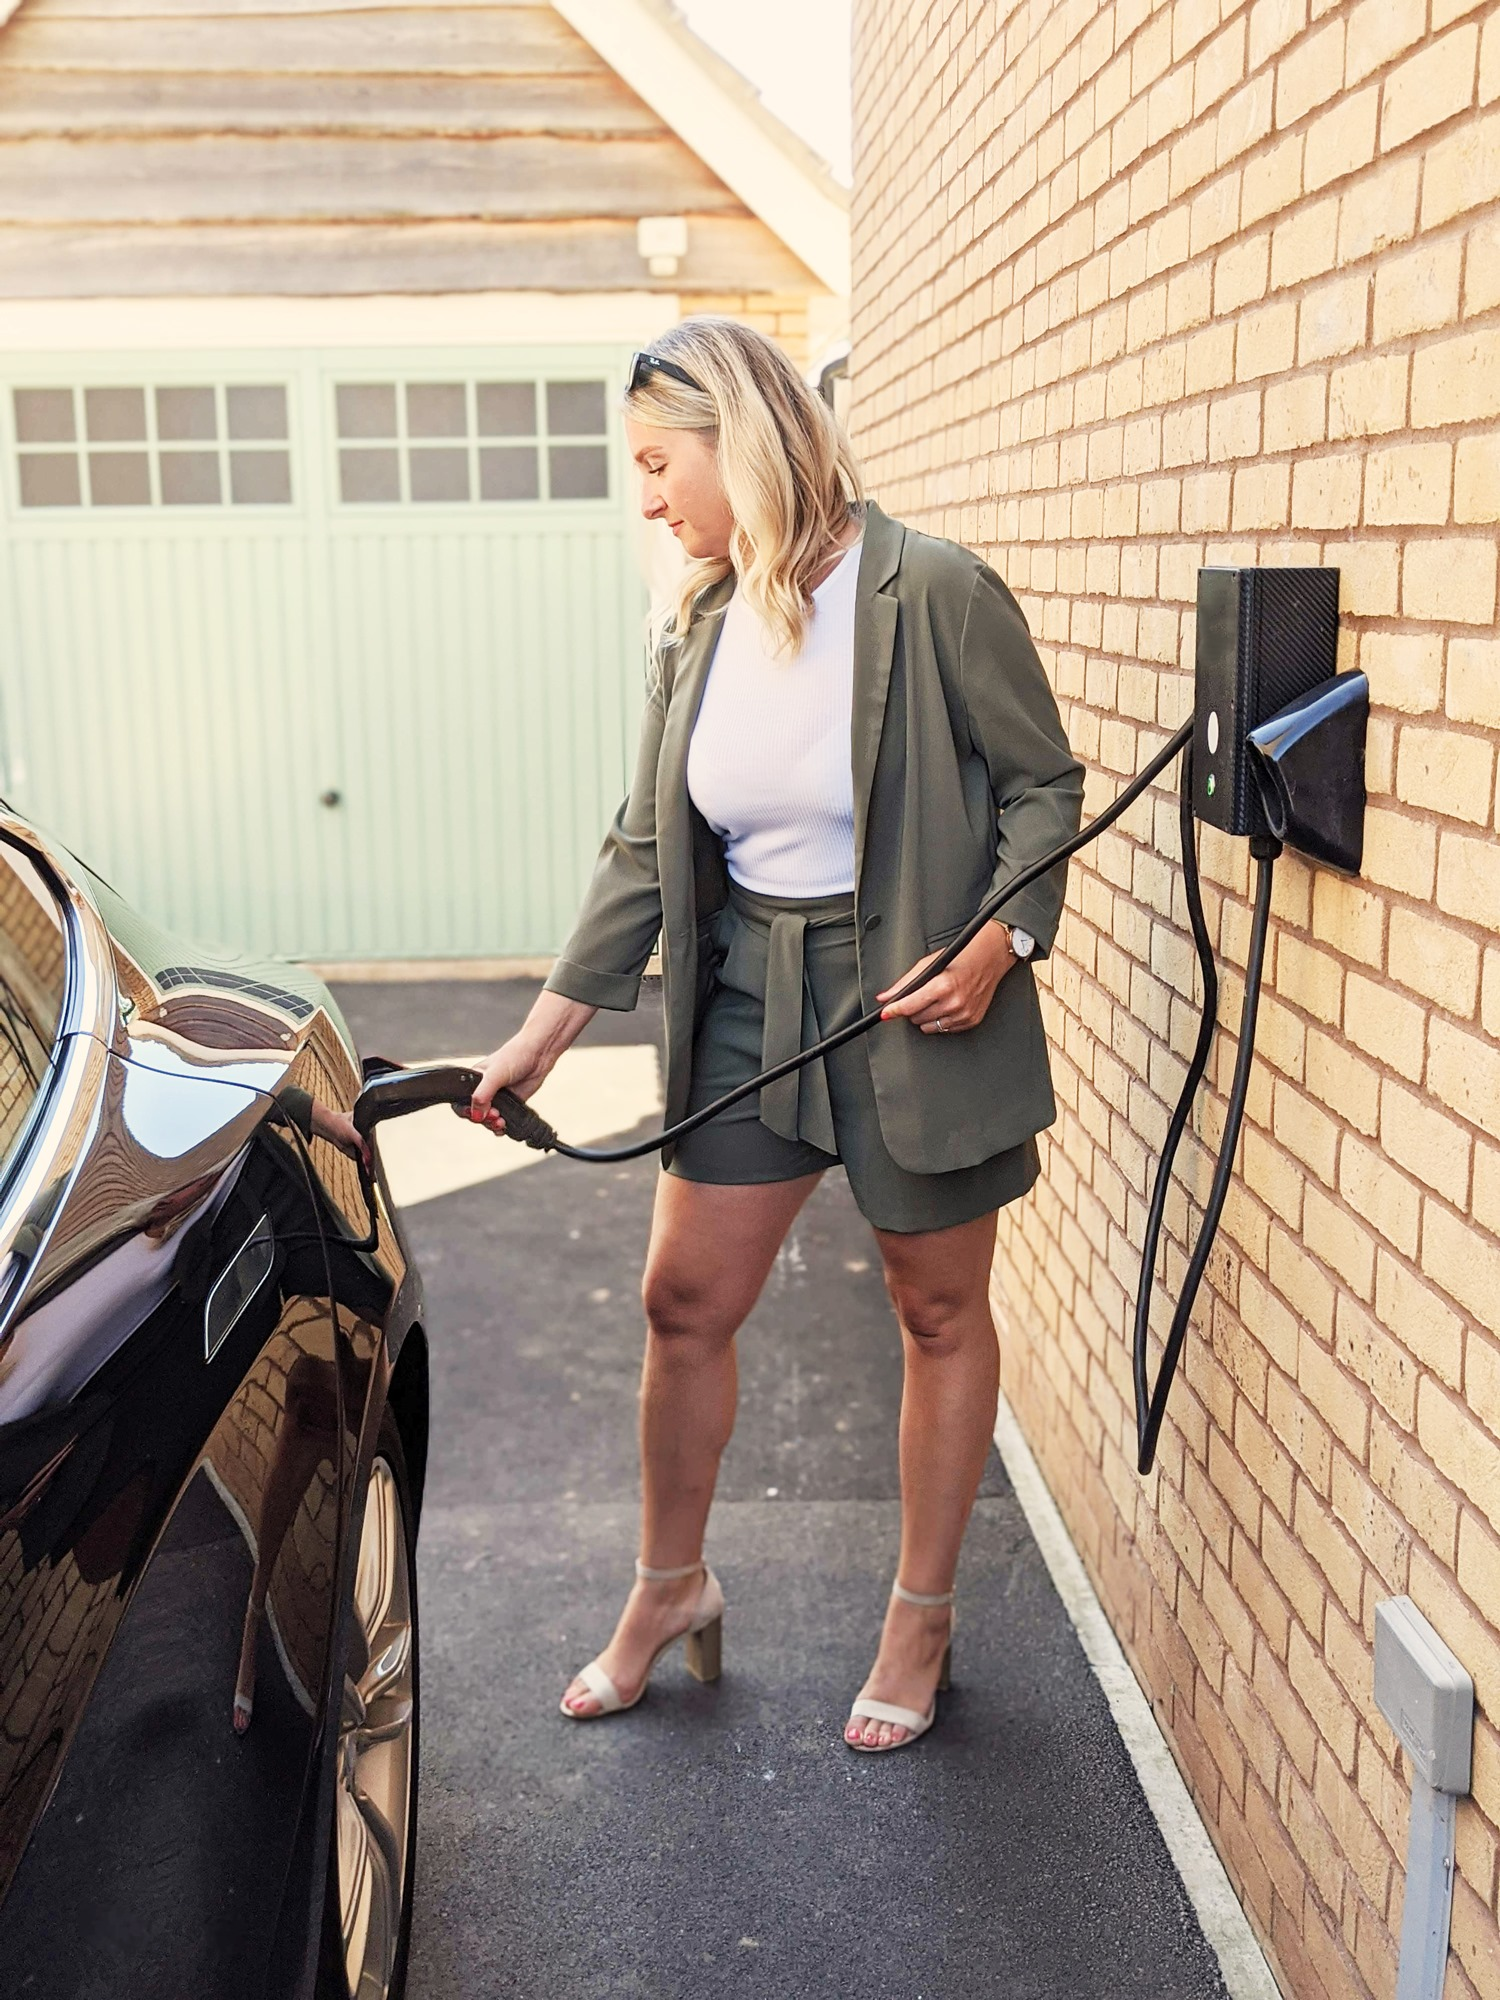 Creating a network of community-based, shared EV charging